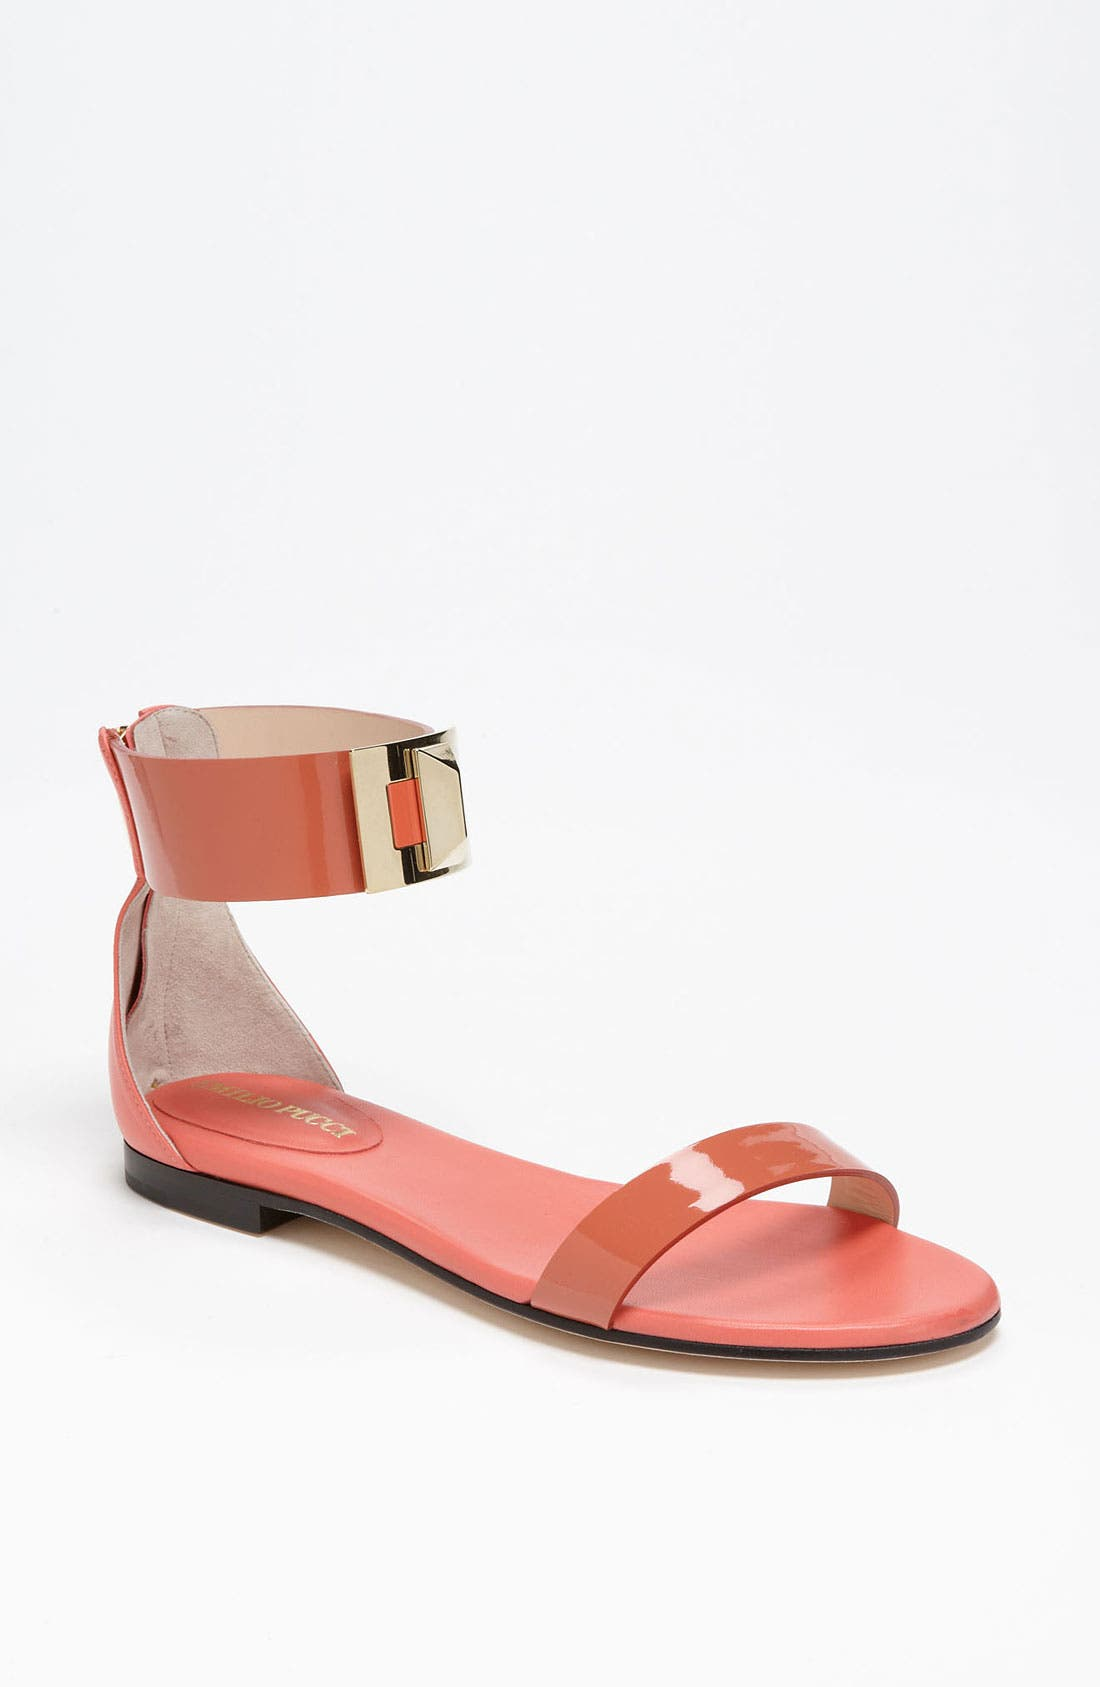 Alternate Image 1 Selected - Emilio Pucci 'Marquise' Flat Sandal